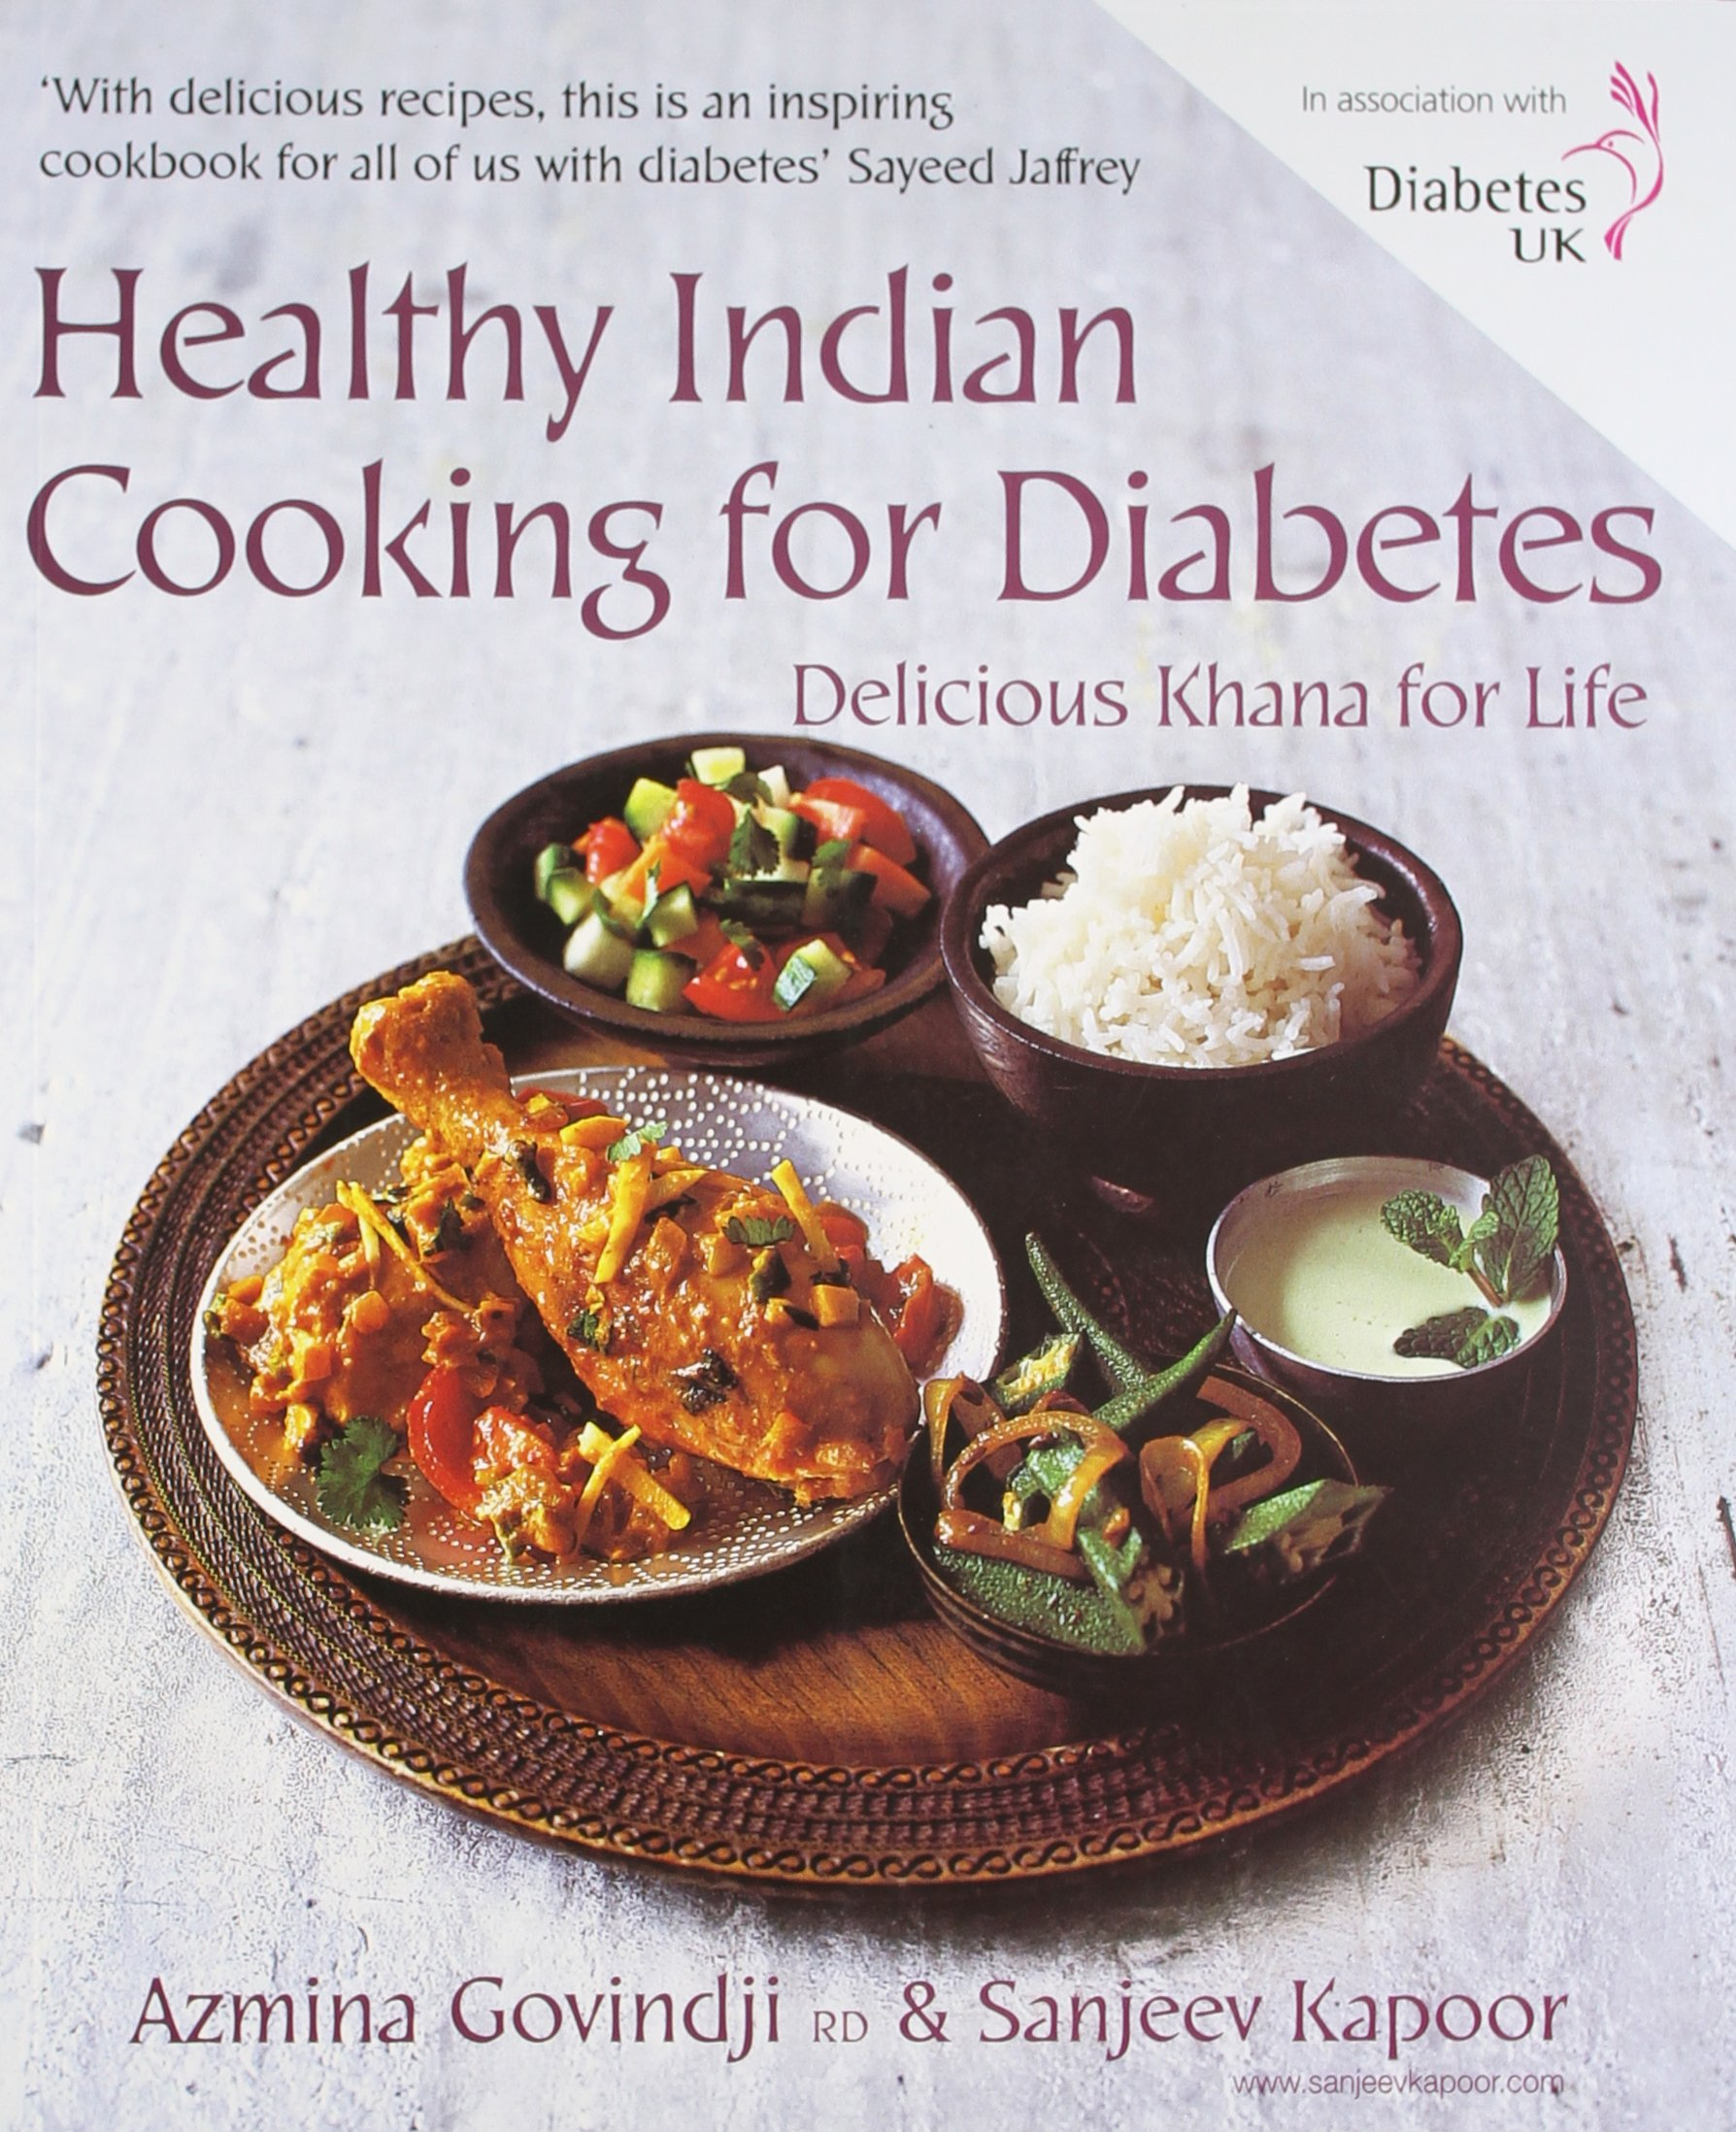 Healthy indian cooking for diabetes sanjeev kapoor azmina govindji healthy indian cooking for diabetes sanjeev kapoor azmina govindji 9788179913574 amazon books fandeluxe Gallery